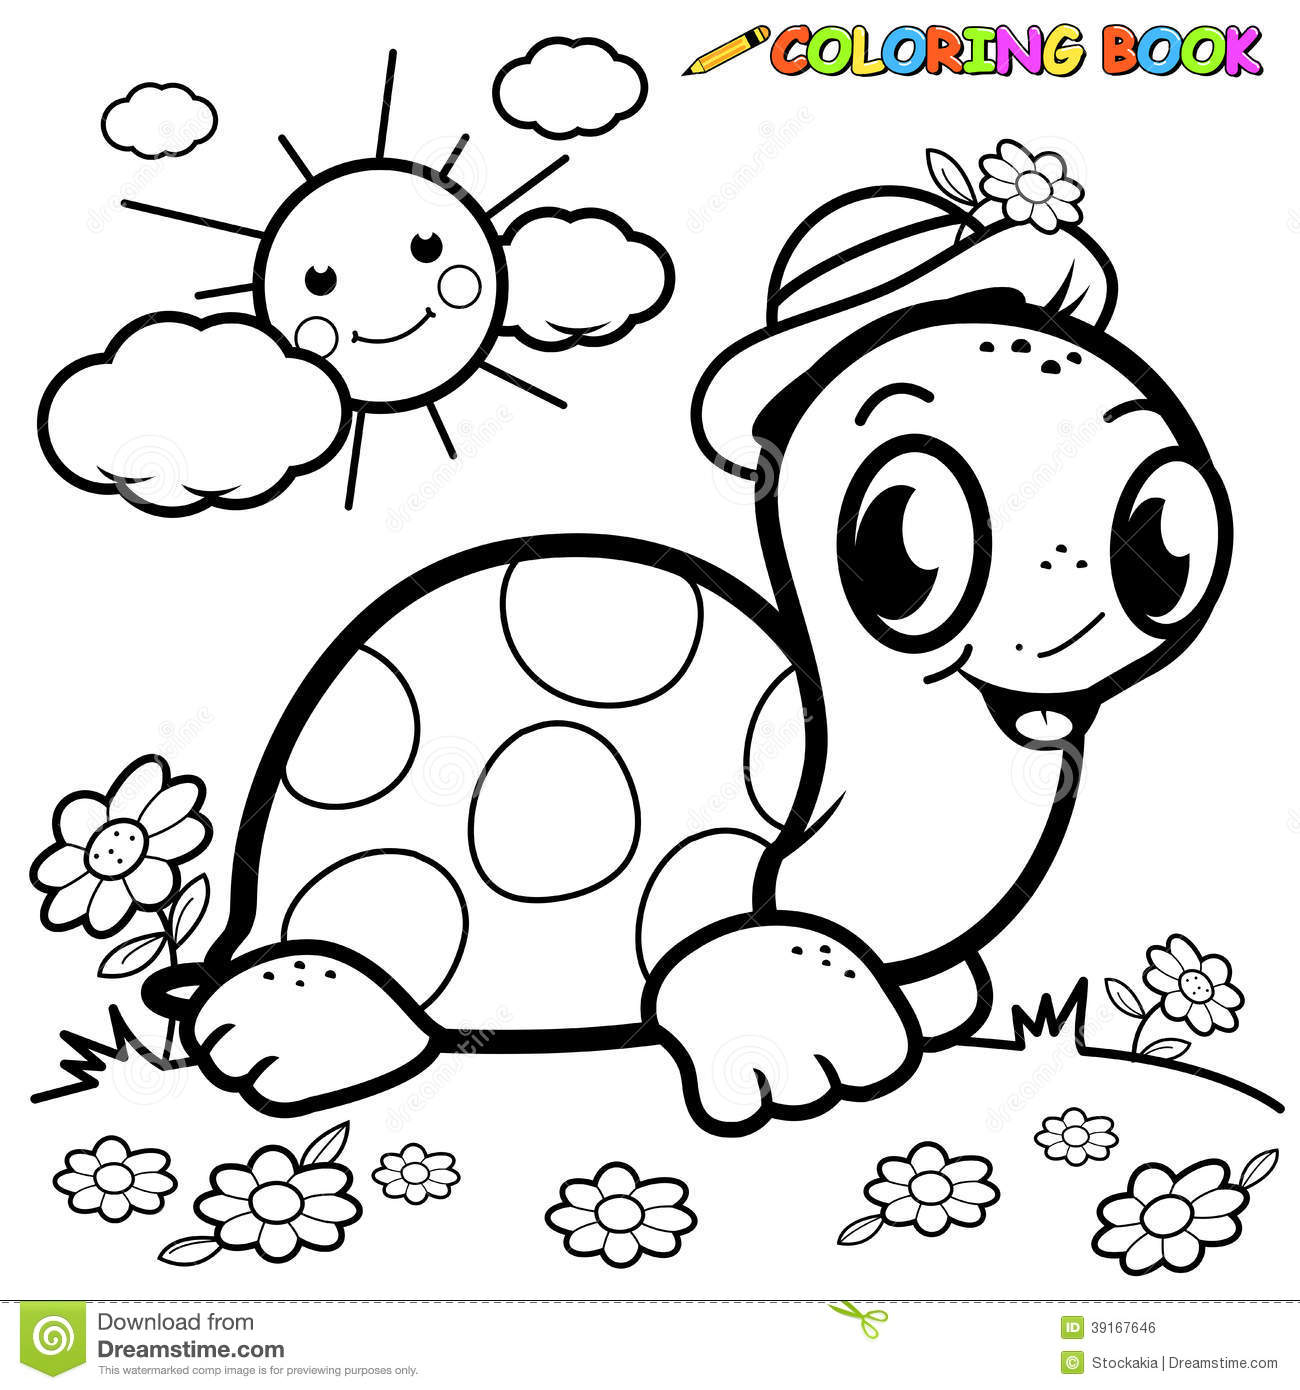 Coloring Book Turtle In Grass Stock Vector - Illustration of ...